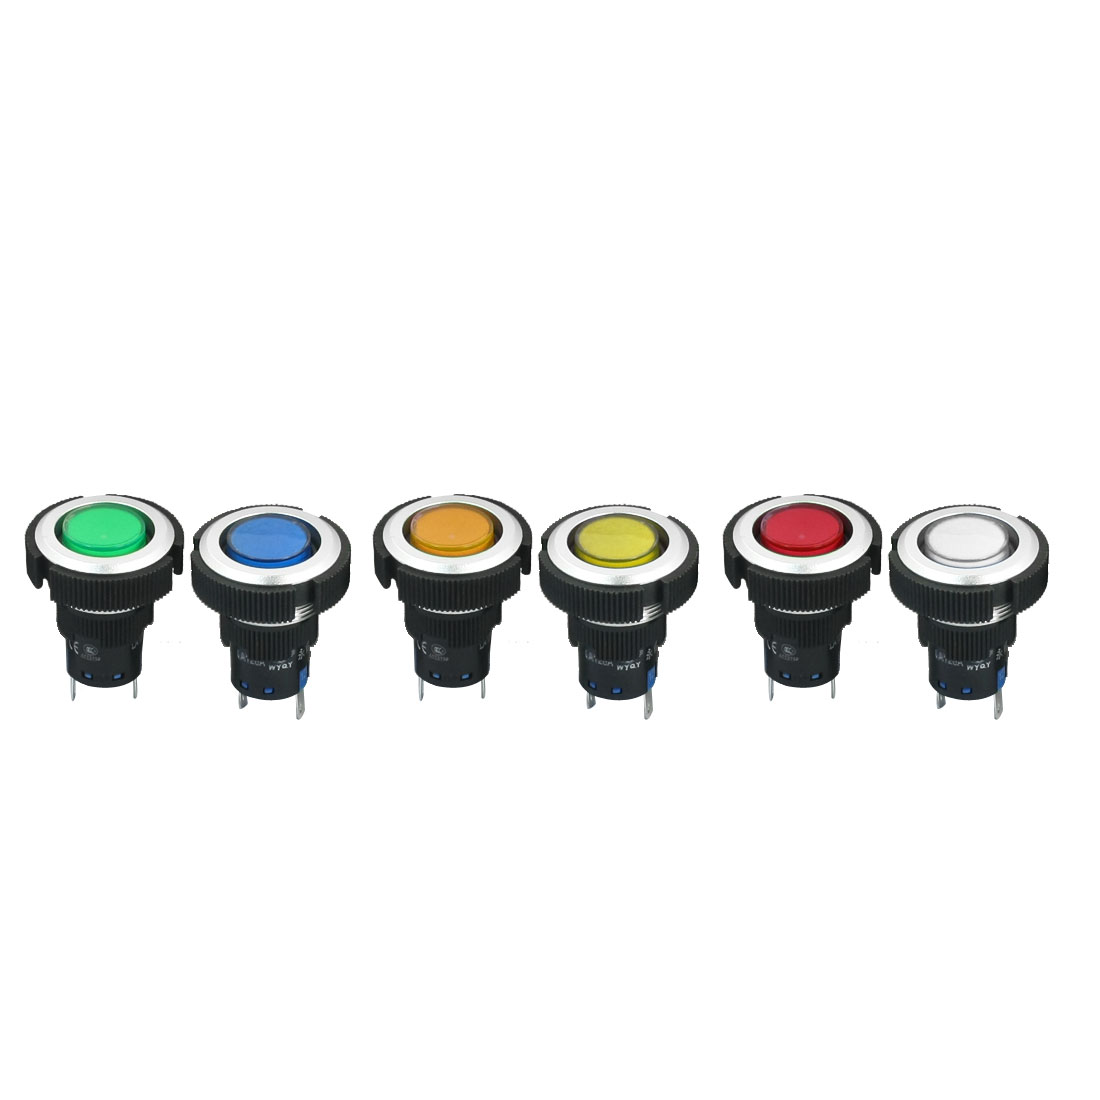 6Pcs DC 12V 22mm Dia Thread Panel Mounting Plastic 6-Color Signal Indicator Light Pilot Lamp Bulb